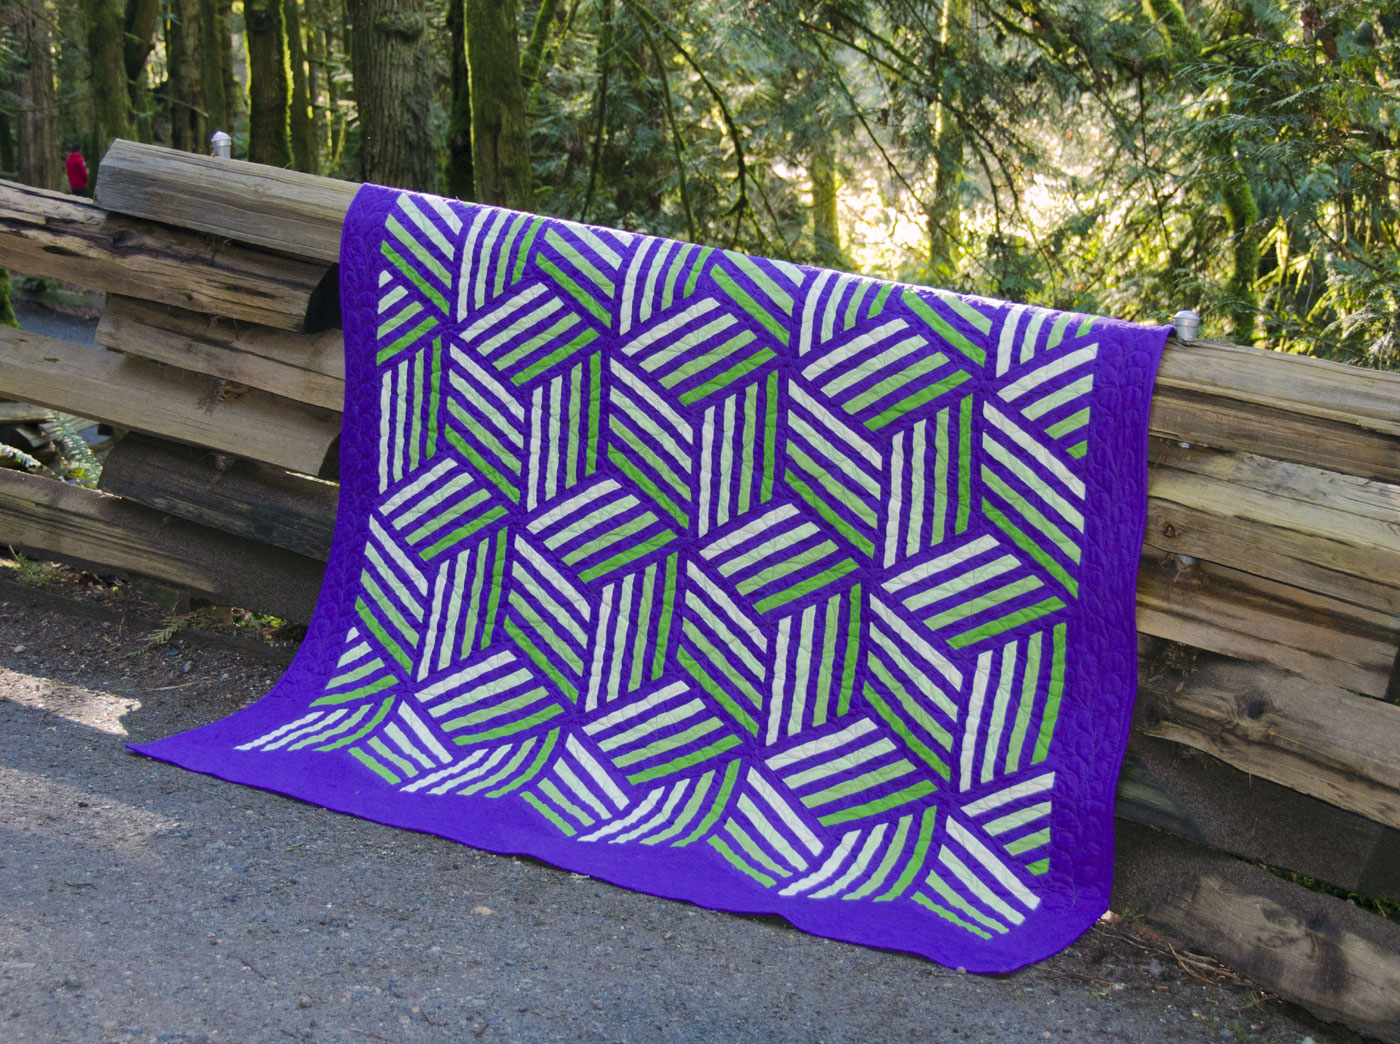 Amish Block Party (version 2) - pattern for sale in shop